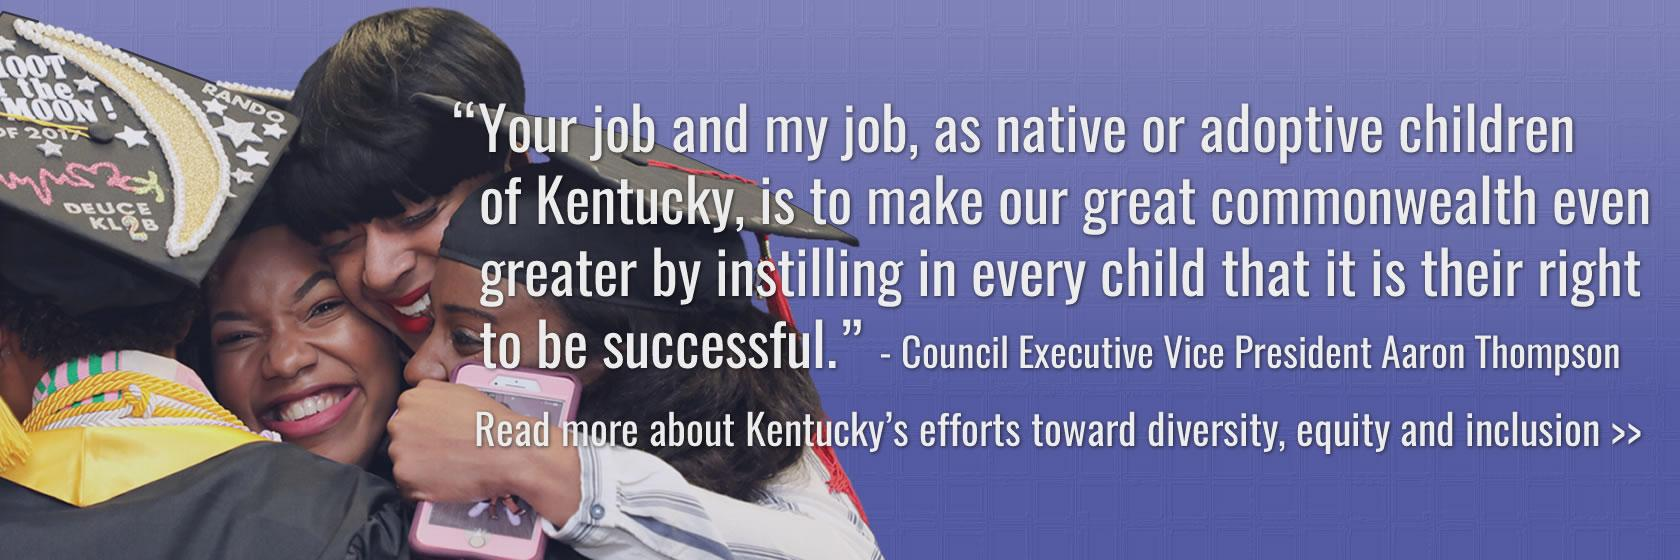 Read about Kentucky's efforts to expand diversity, equity and inclusion on campuses.